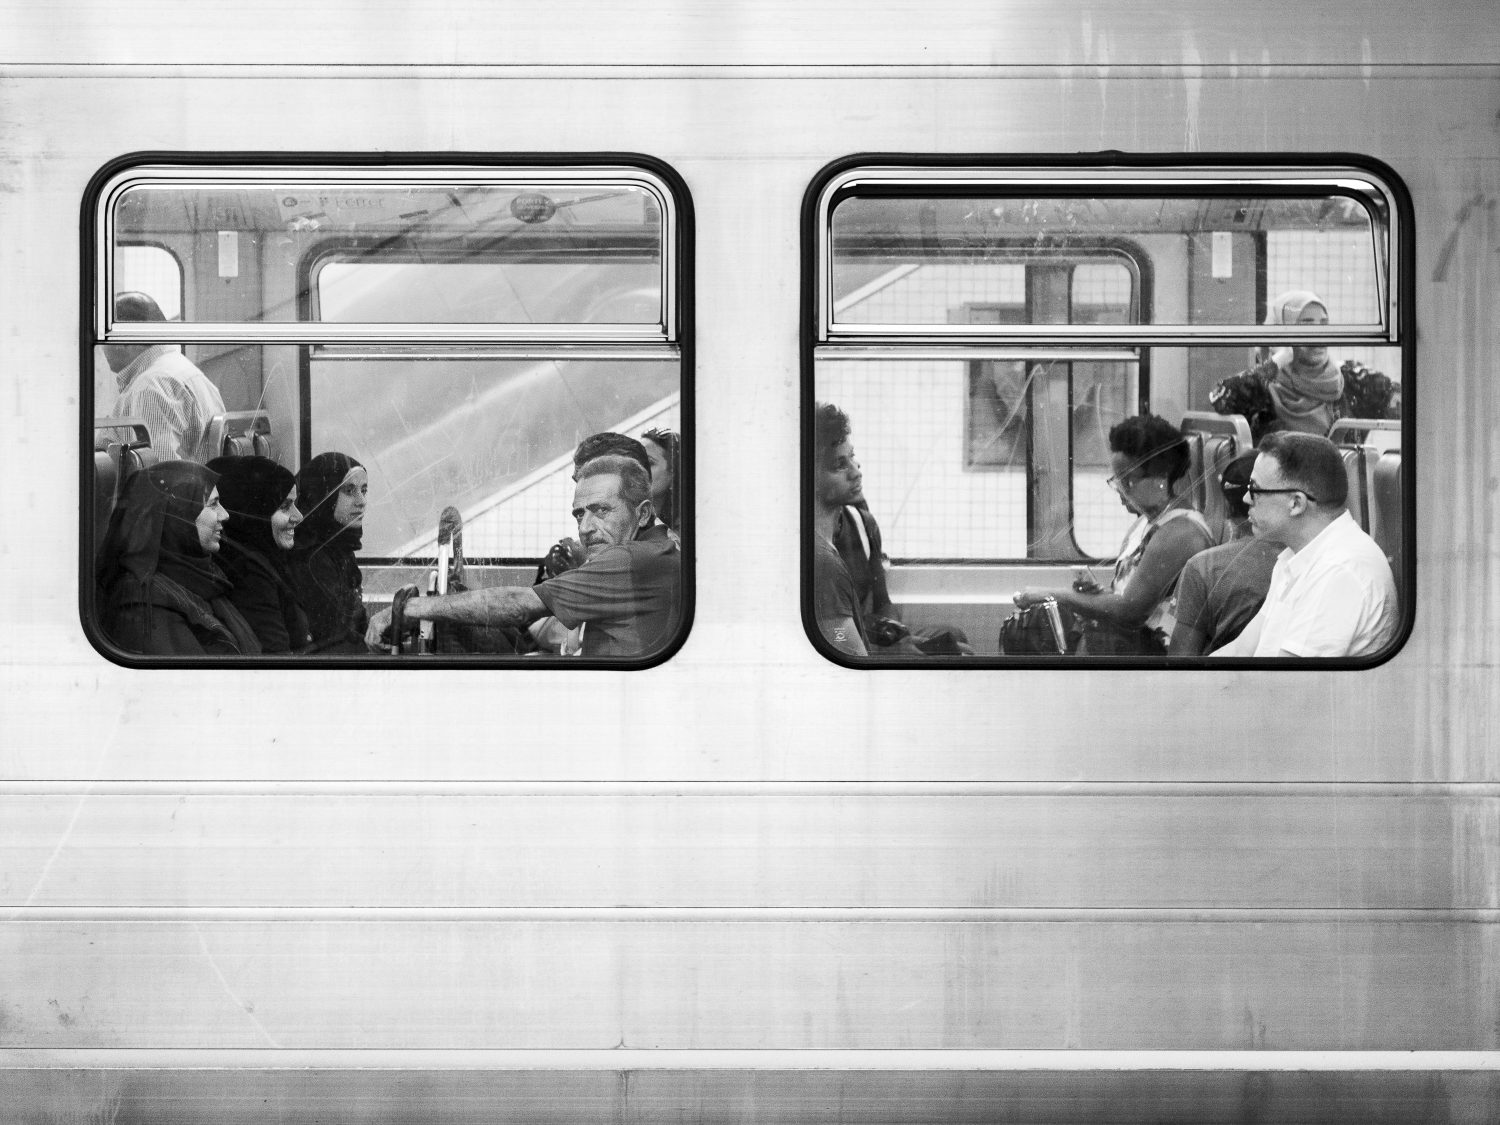 Commuters in Brussels